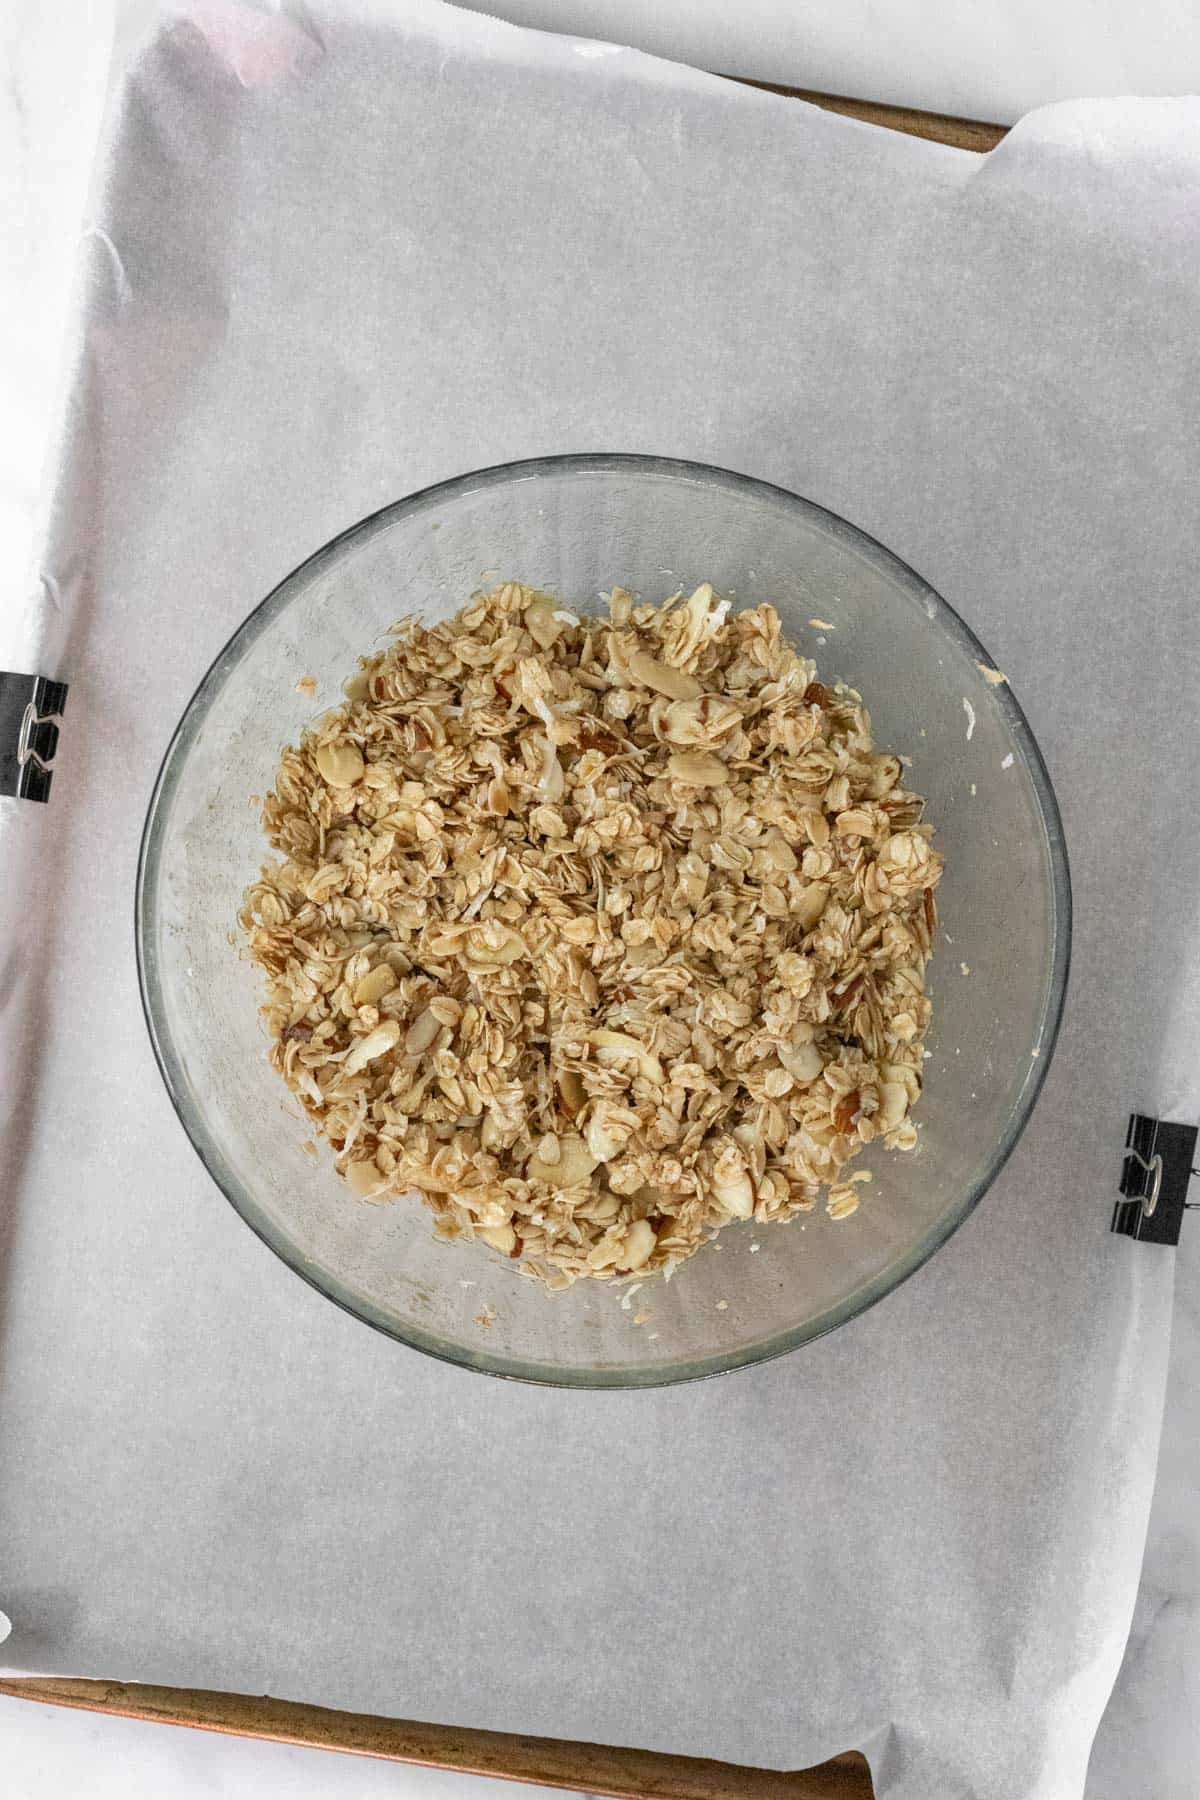 Ingredients for homemade granola mixed together in a glass bowl.